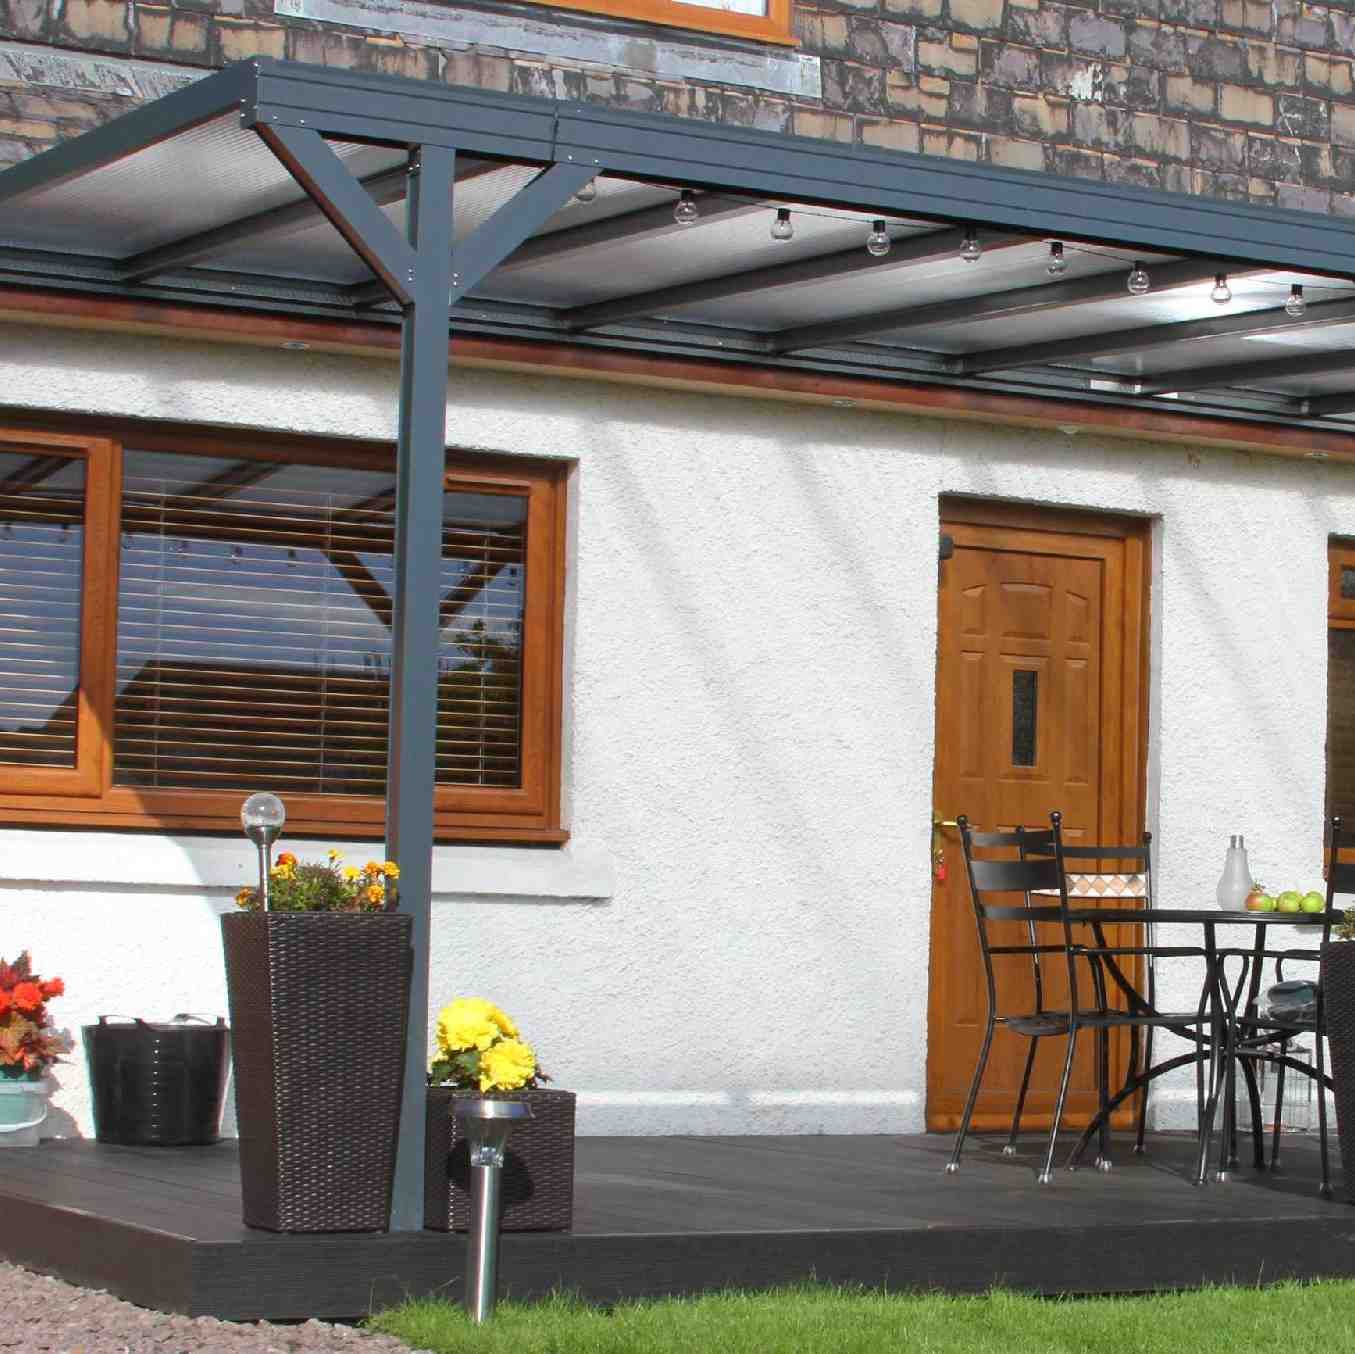 Omega Verandah, Anthracite Grey, 16mm Polycarbonate Glazing - 7.4m (W) x 2.5m (P), (4) Supporting Posts